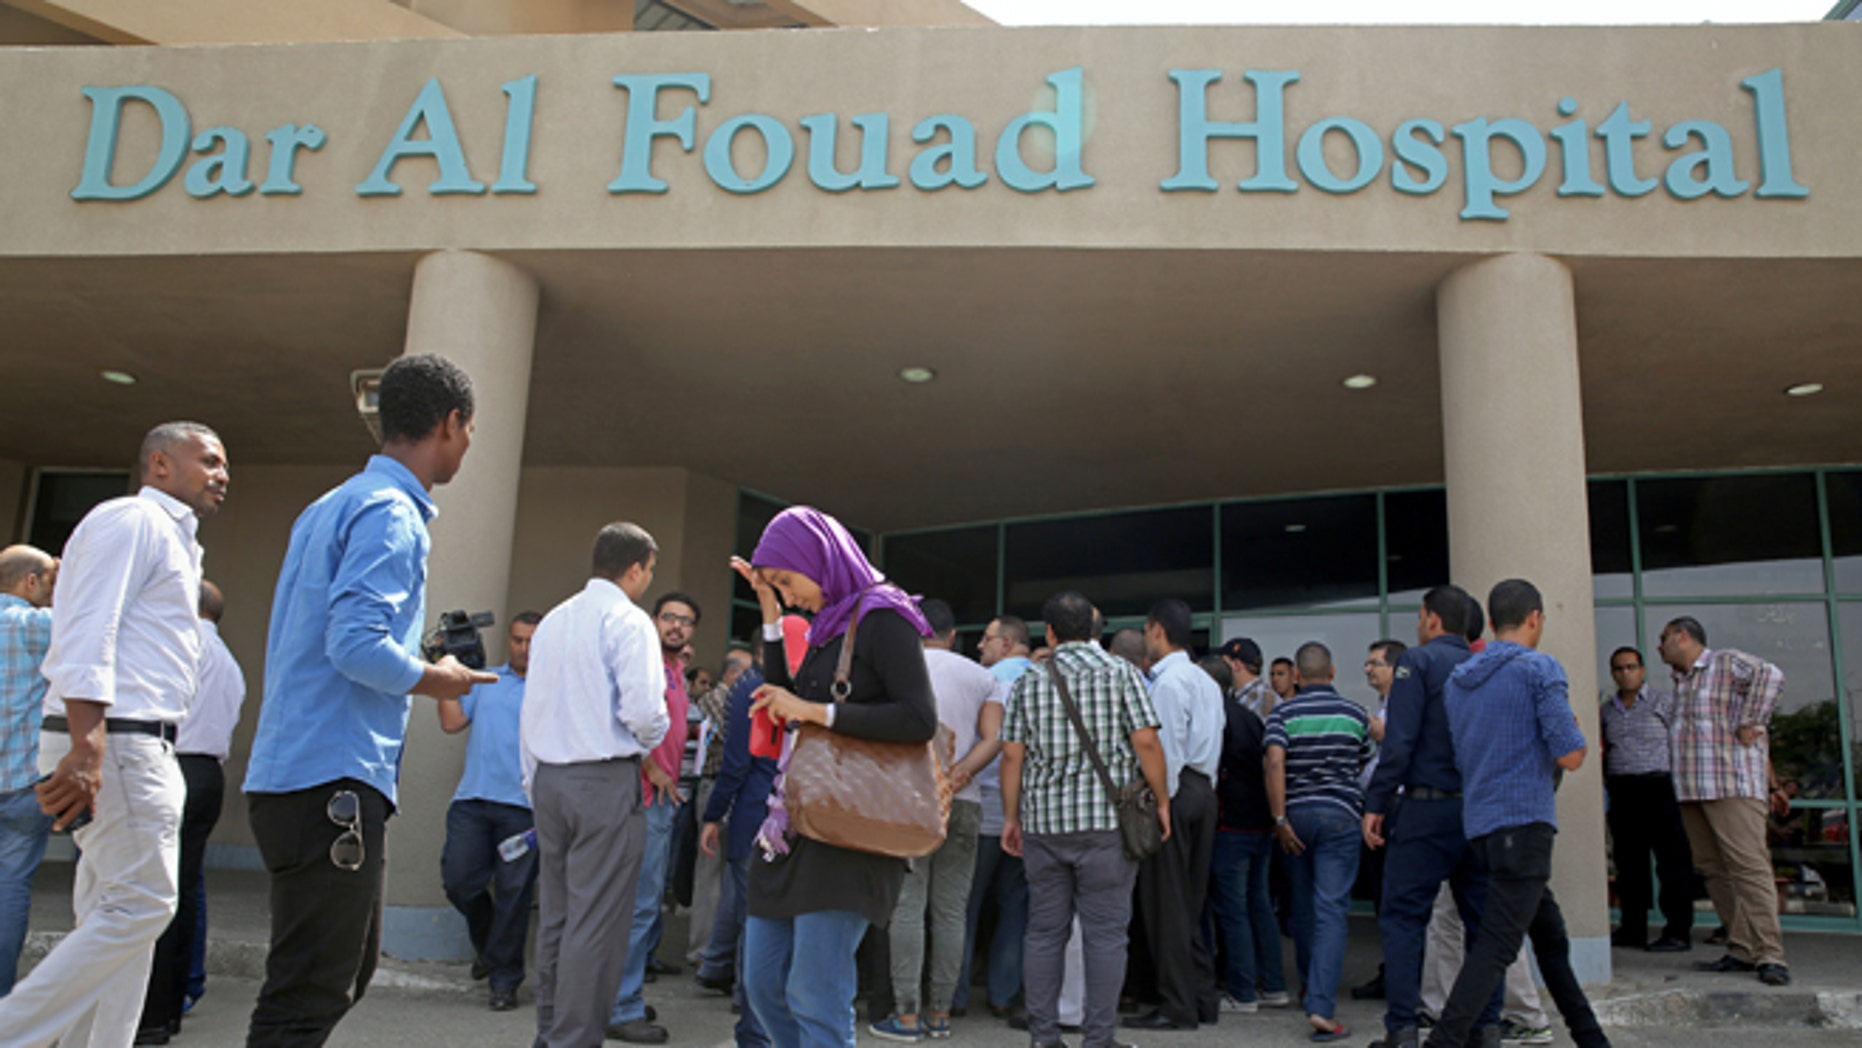 Egyptian journalists wait for information about tourists who were injured Sunday while on a desert safari trip, in front of the Dar Al Fouad Hospital in Cairo, Egypt, Monday, Sept. 14, 2015. At least 12 people were killed and 10 injured in Egypt's southwestern desert Sunday, Sept 13, 2015, when security forces mistakenly fired on a group of Mexican tourists, Egyptian officials said. The Mexican Foreign Ministry confirmed the incident and said at least two of the dead were Mexican nationals. (AP Photo/Nariman El-Mofty)